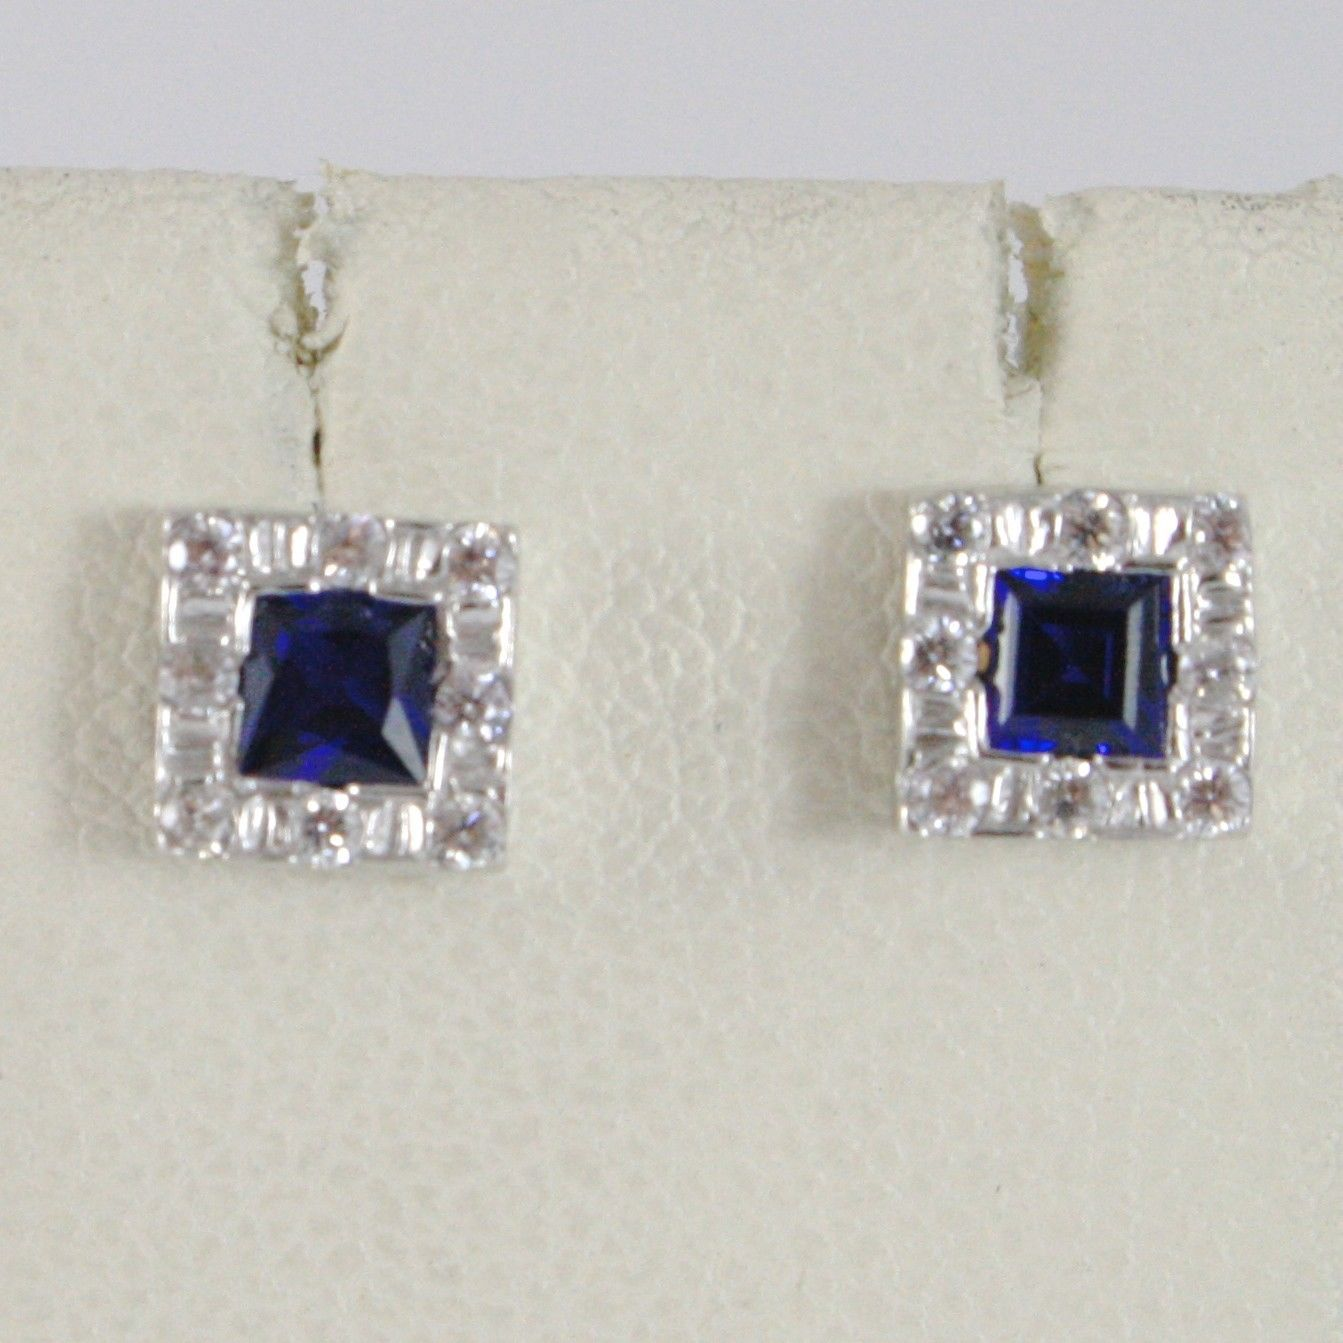 18K WHITE GOLD 6 MM SQUARE EARRINGS WITH ZIRCONIA PRINCESS BLUE, MADE IN ITALY